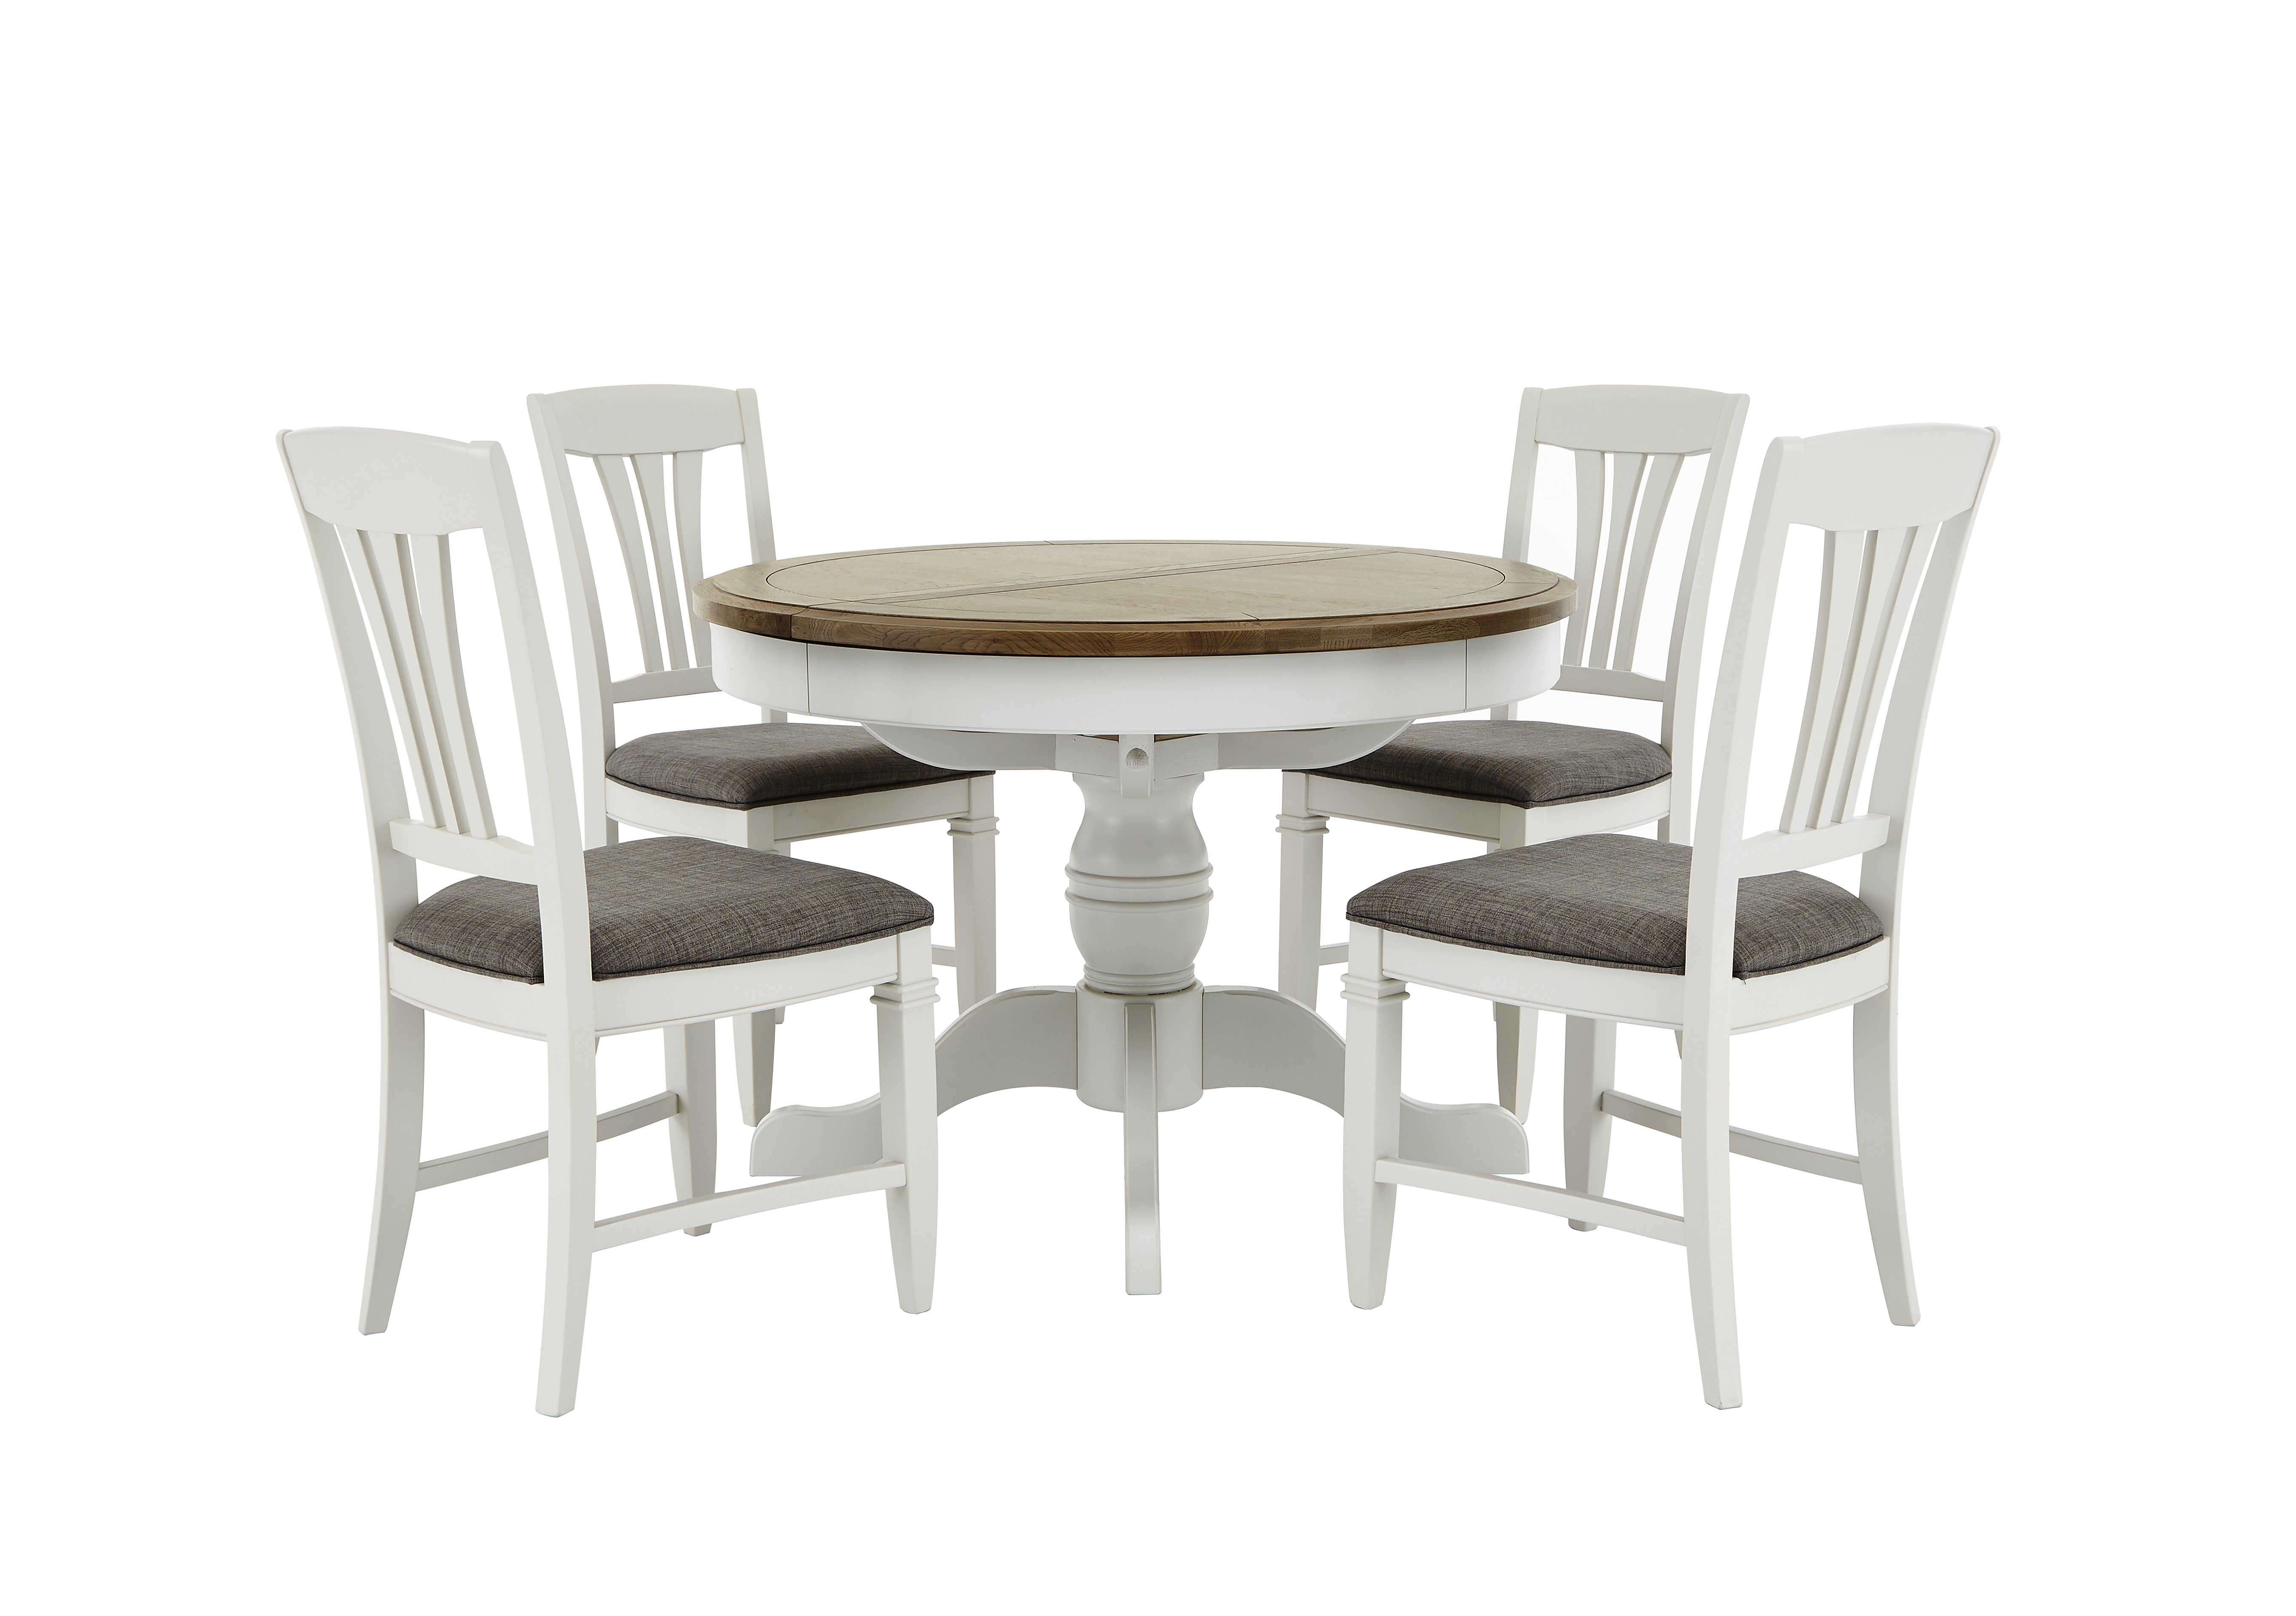 Cobham Round Table and 4 Chairs Furnitureland Furniture Village